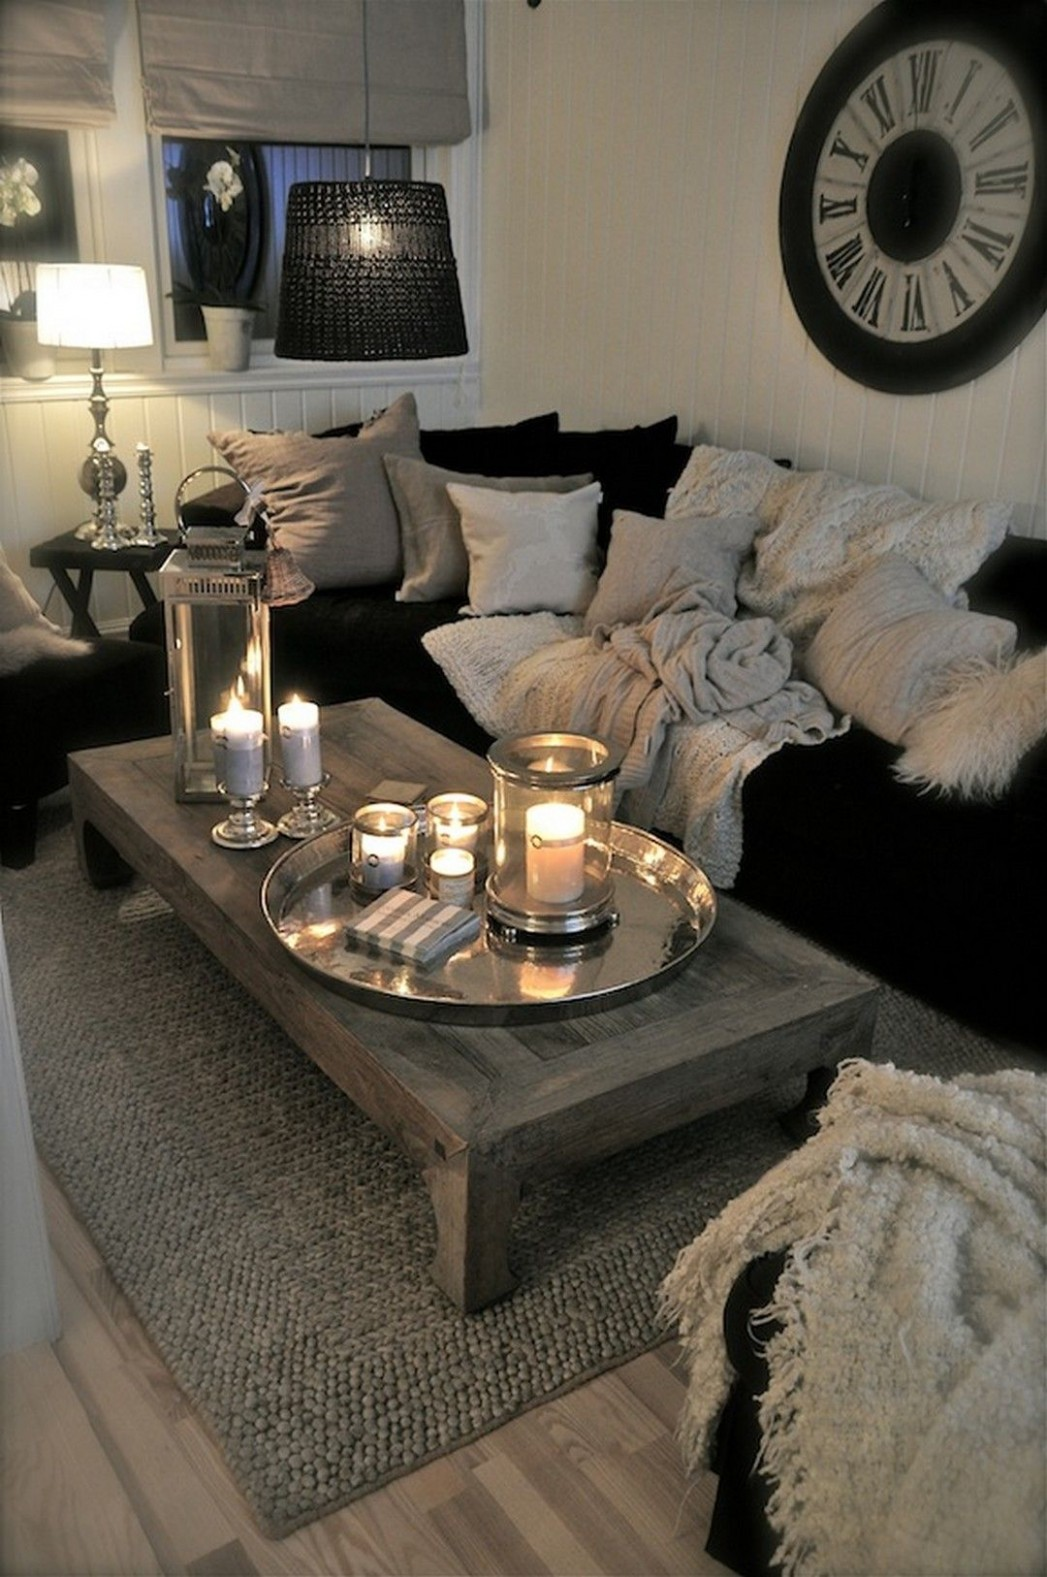 11 Easy DIY First Apartement Decorating Ideas - Architecturehd  - Apartment Decorating Ideas Photos